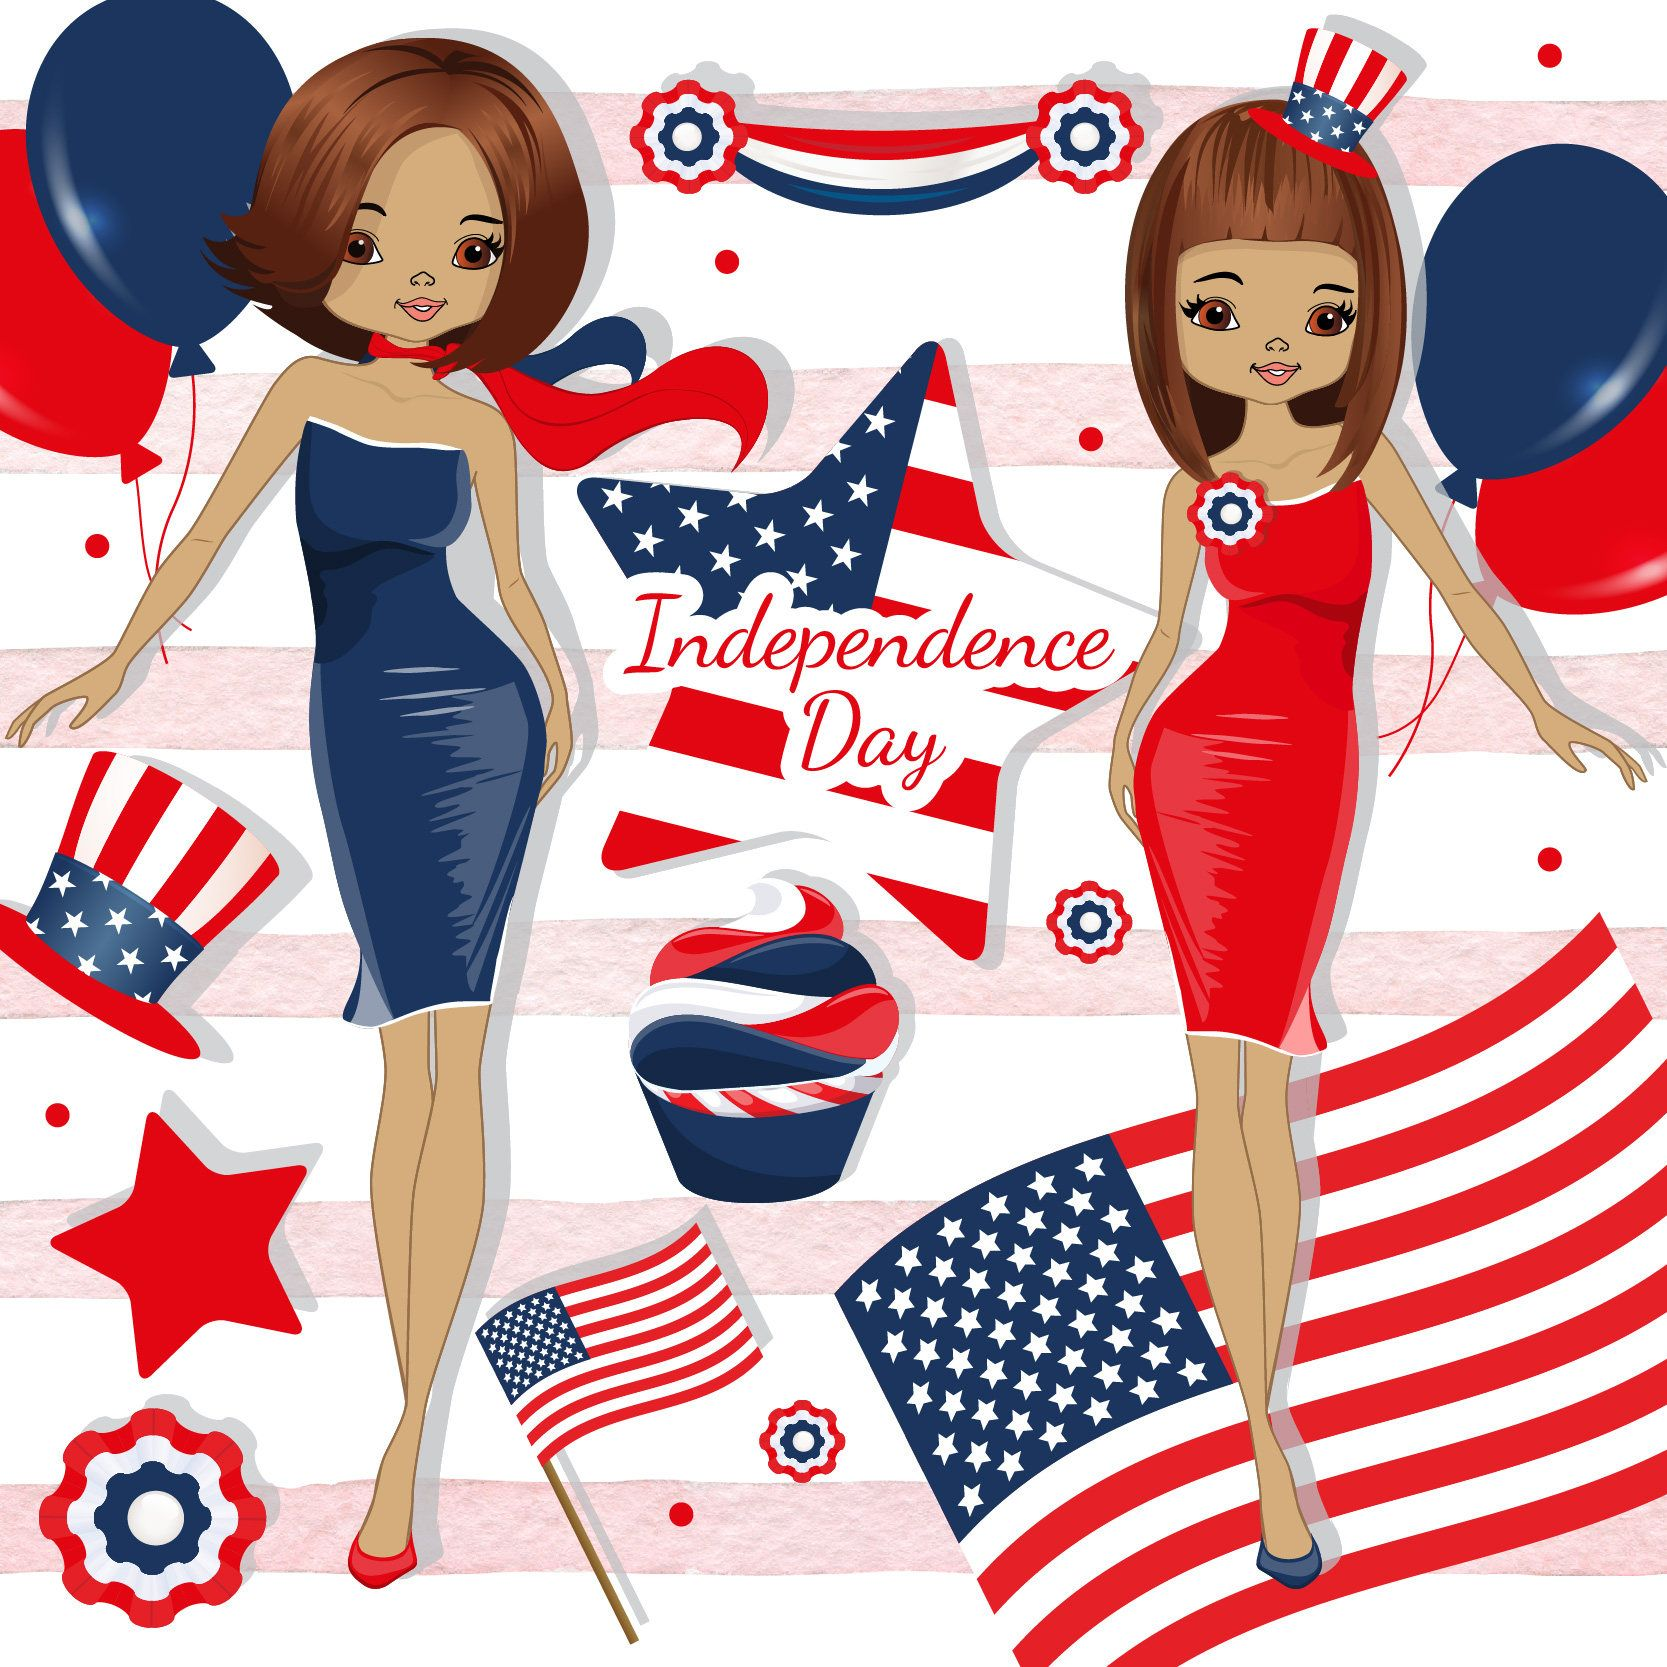 4th of July clipart, Independence day clipart, Patriotic.